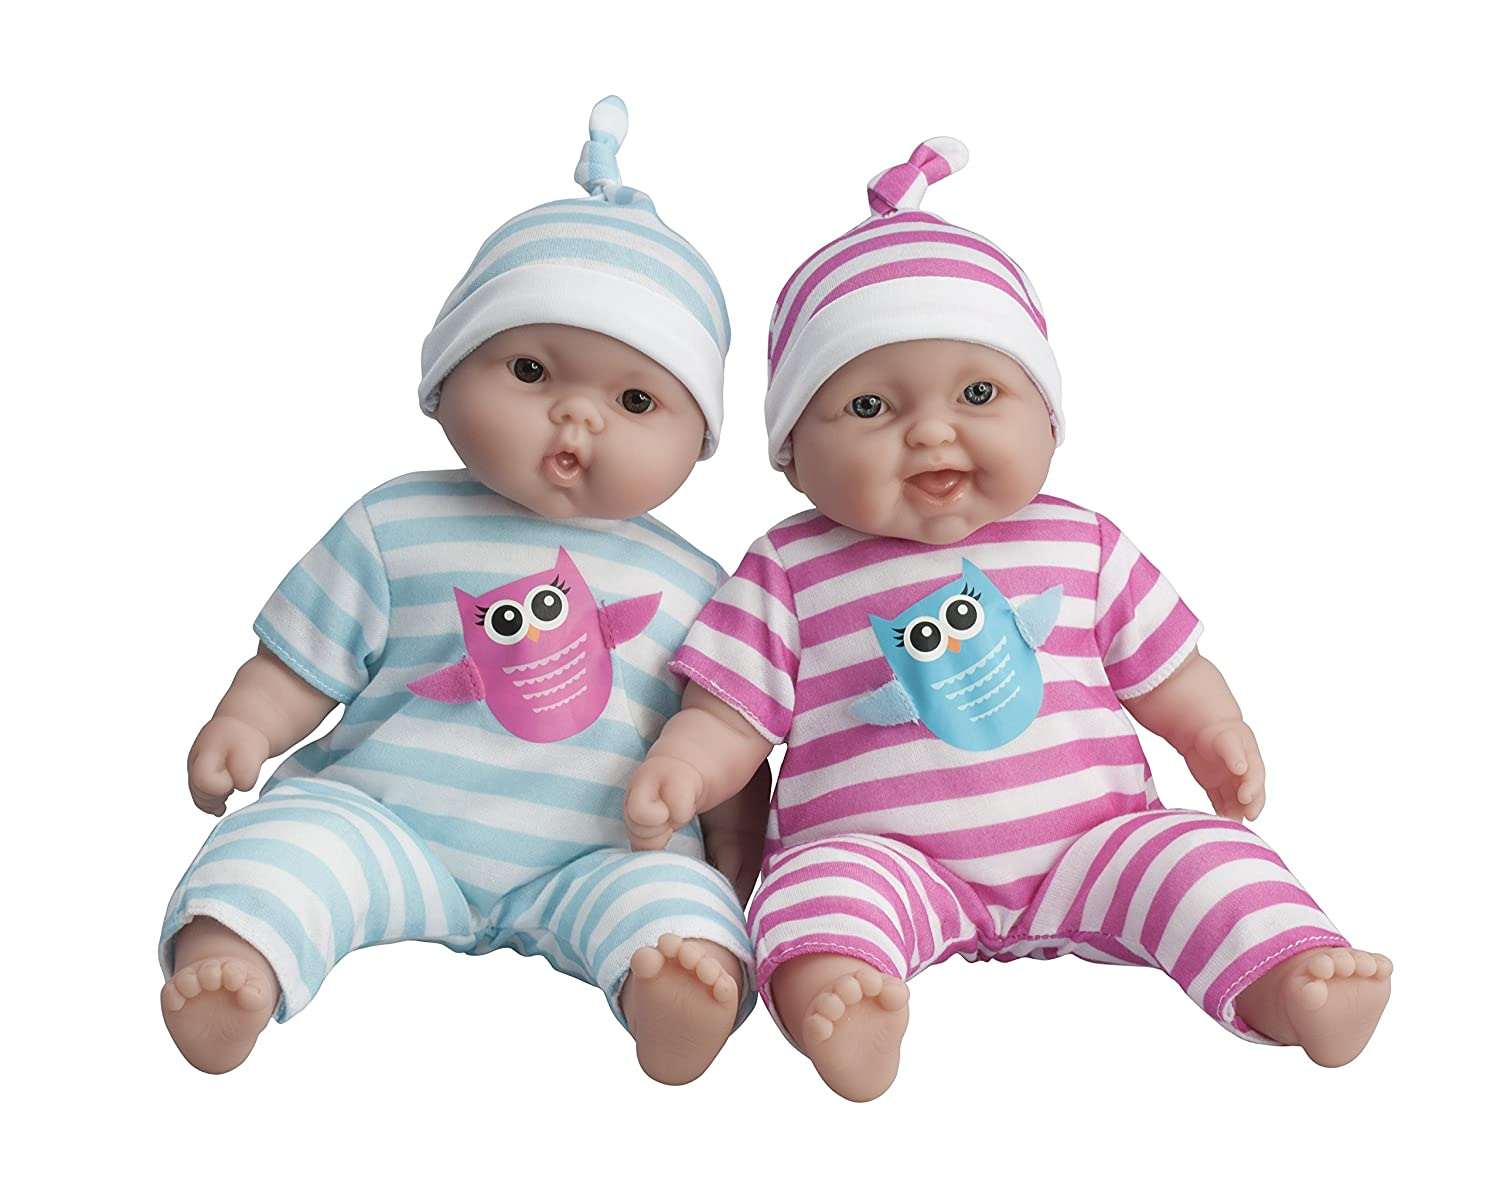 Cuddle Babies Dolls Soft Body Doll Twins Cute Baby Dolls Blue Eyes